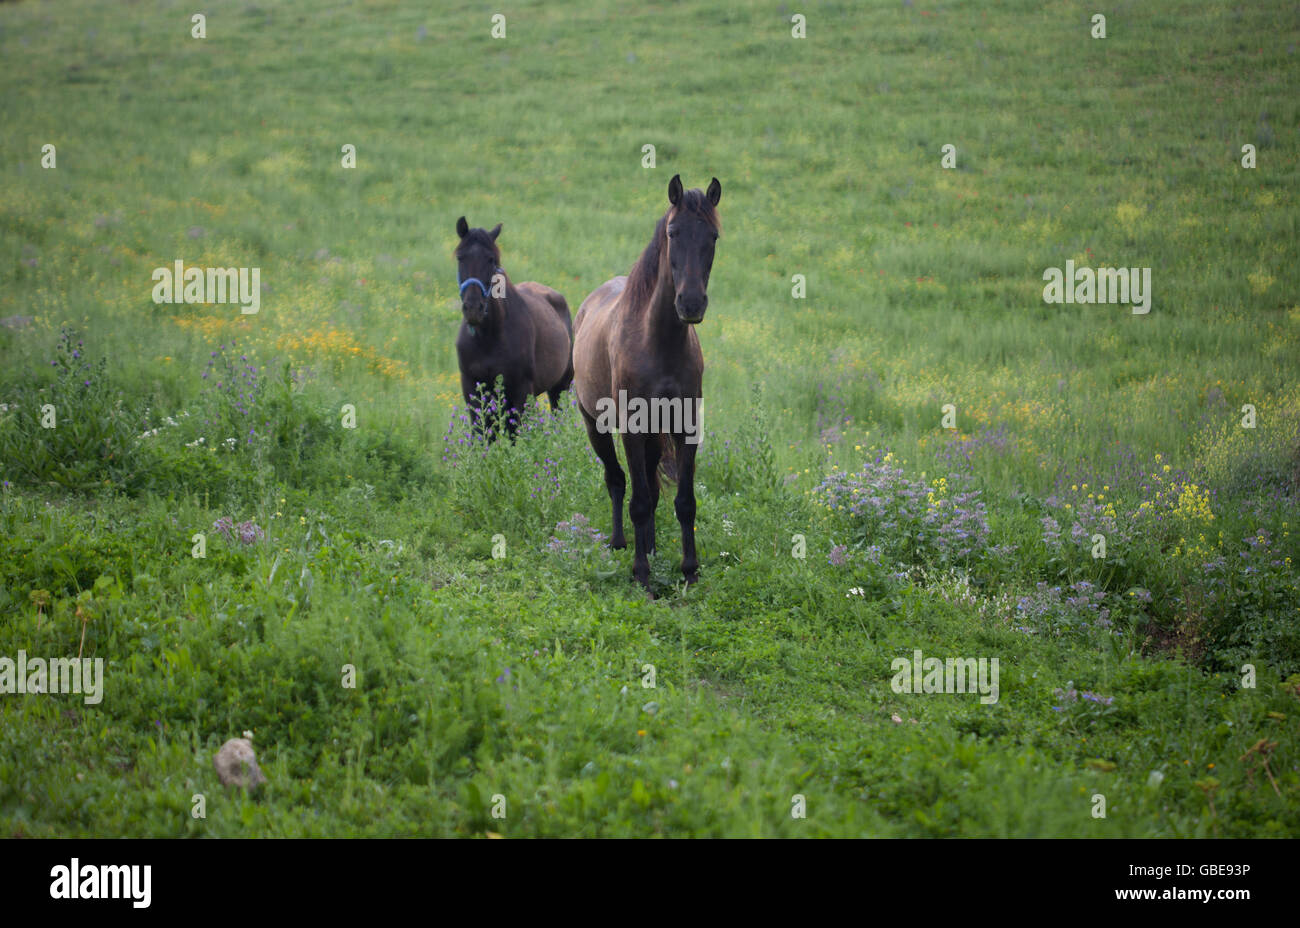 Wild horses used to fertilize an olive orchard in an organic farm in Prado del Rey, Cadiz, Andalusia, Spain, July - Stock Image